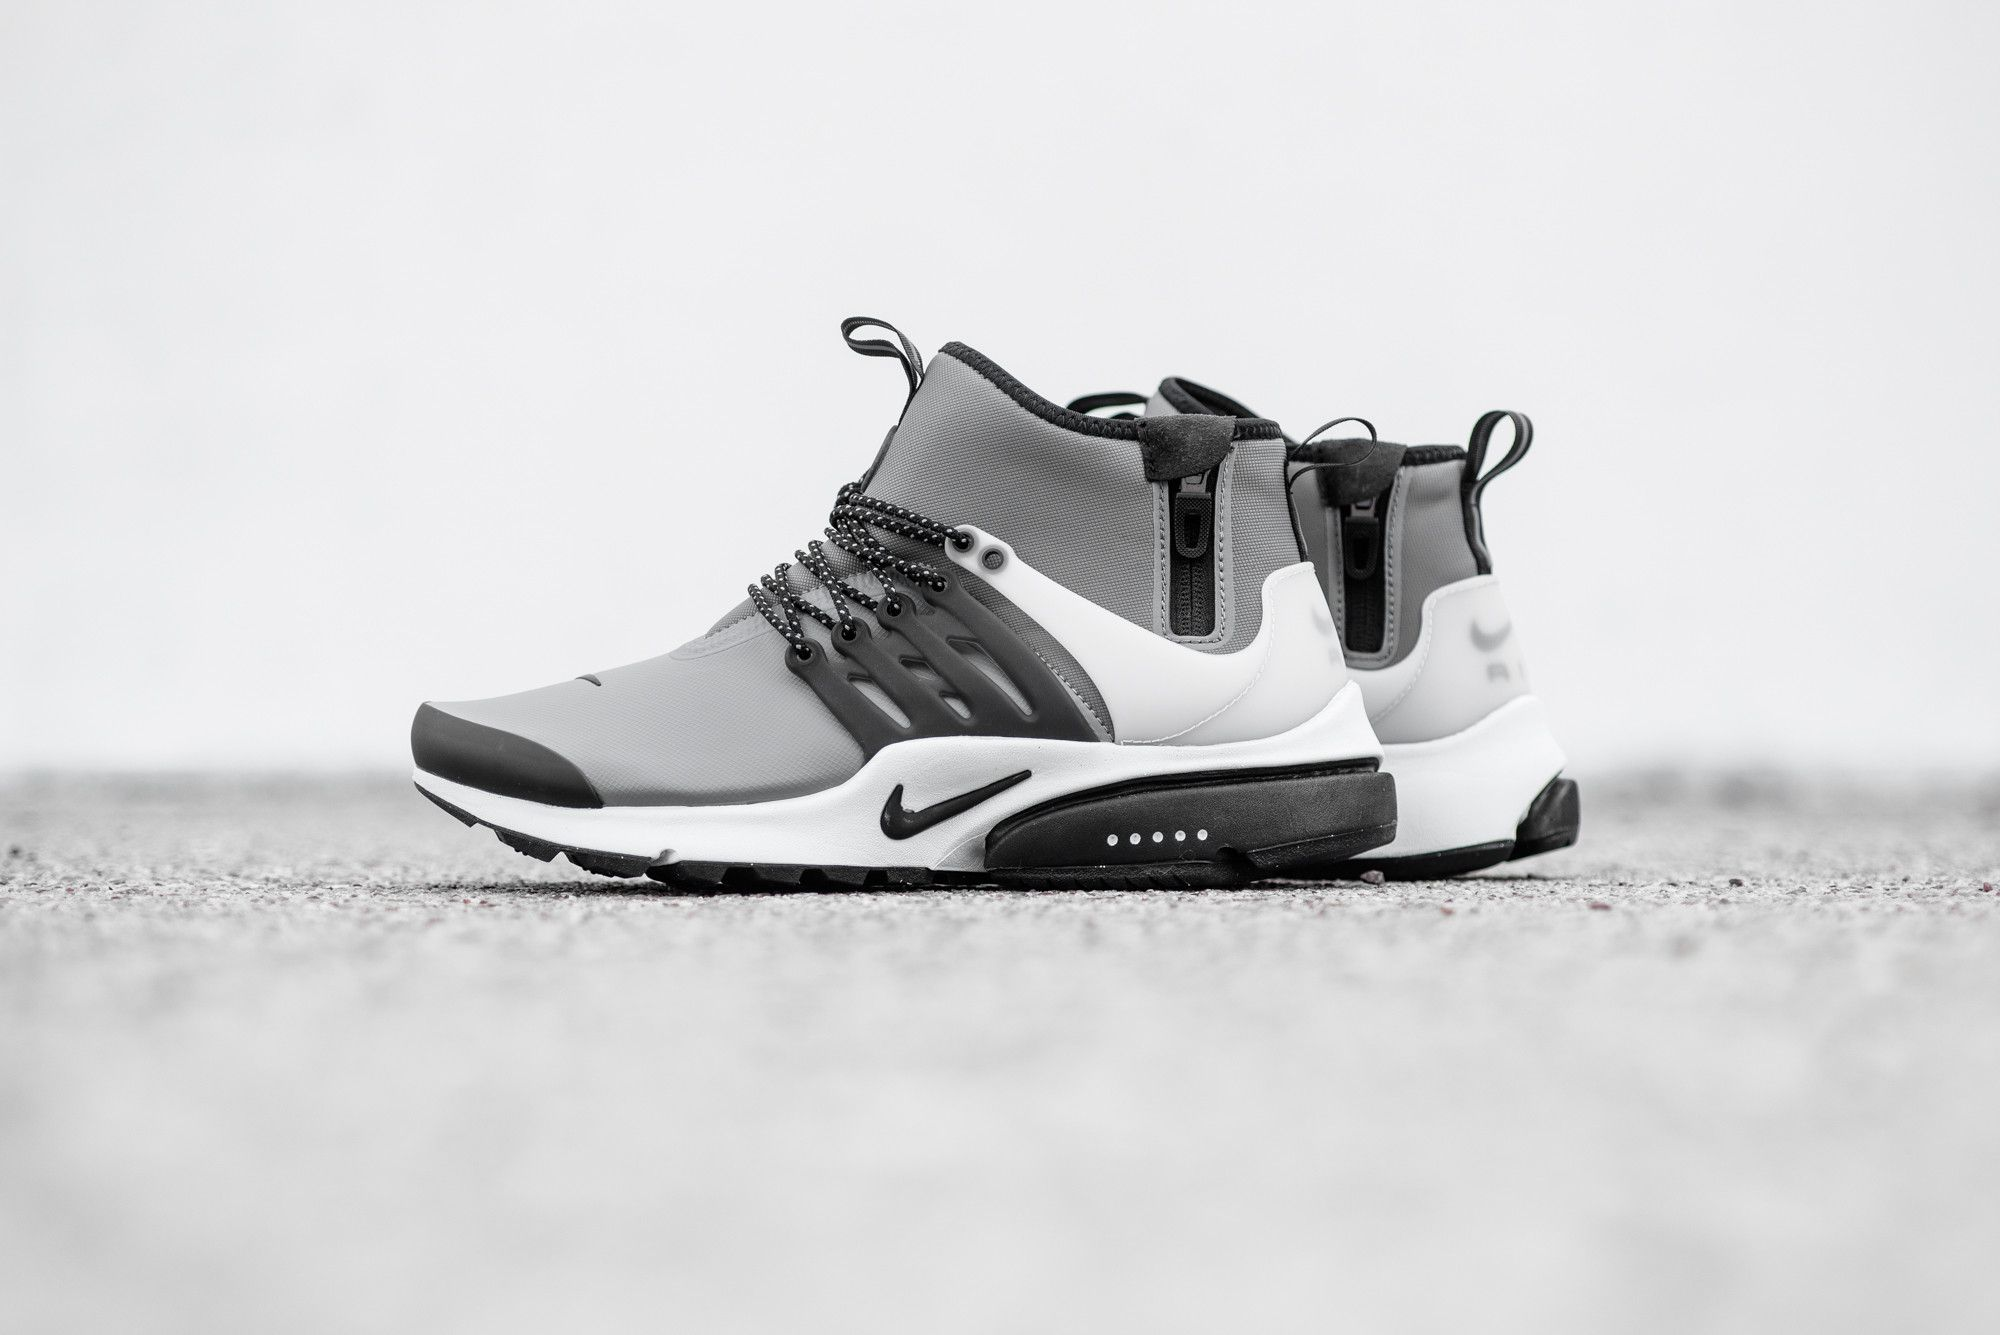 The Nike Air Presto Mid Utility Will Release In Cool Grey